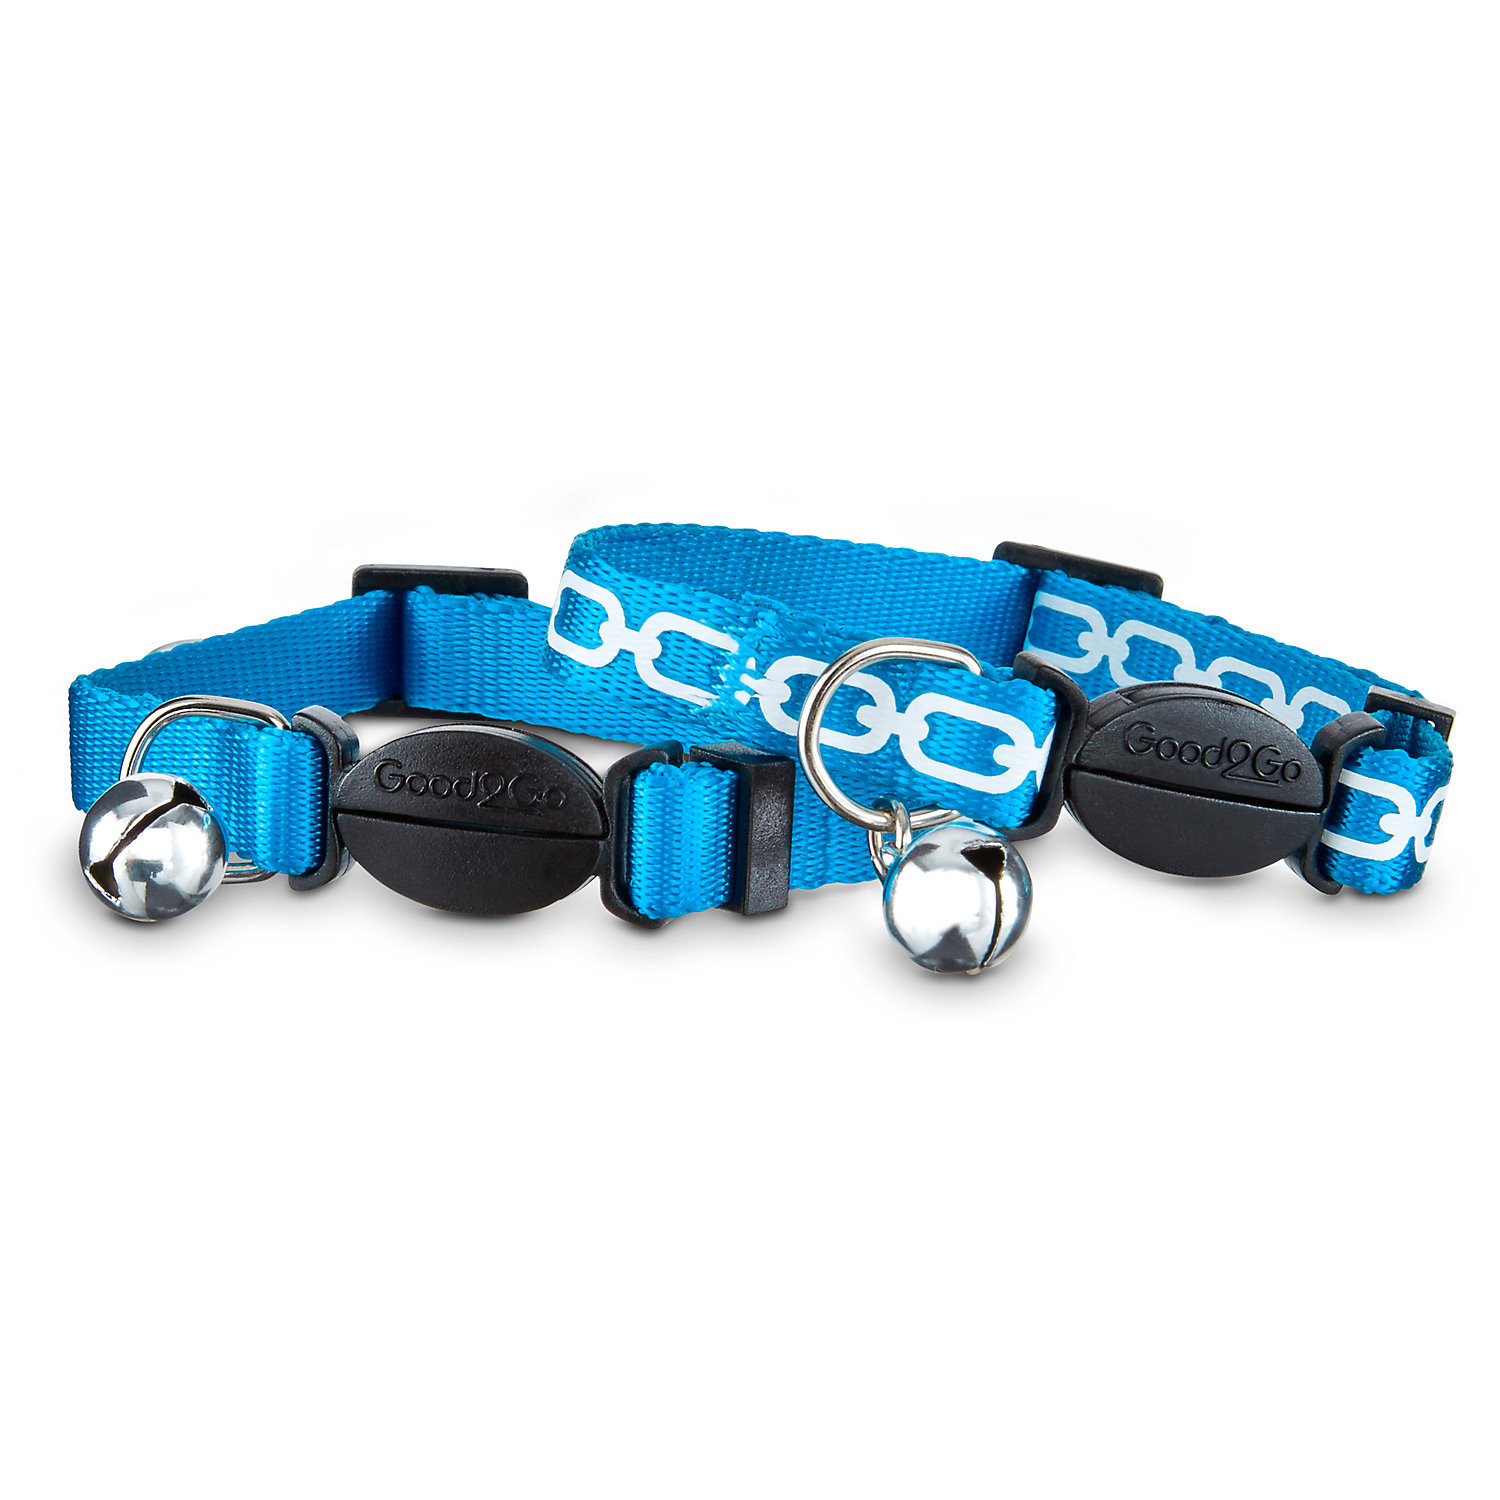 Good2go Blue Link Breakaway Cat Collars For Necks 8 12 One Size Fits All